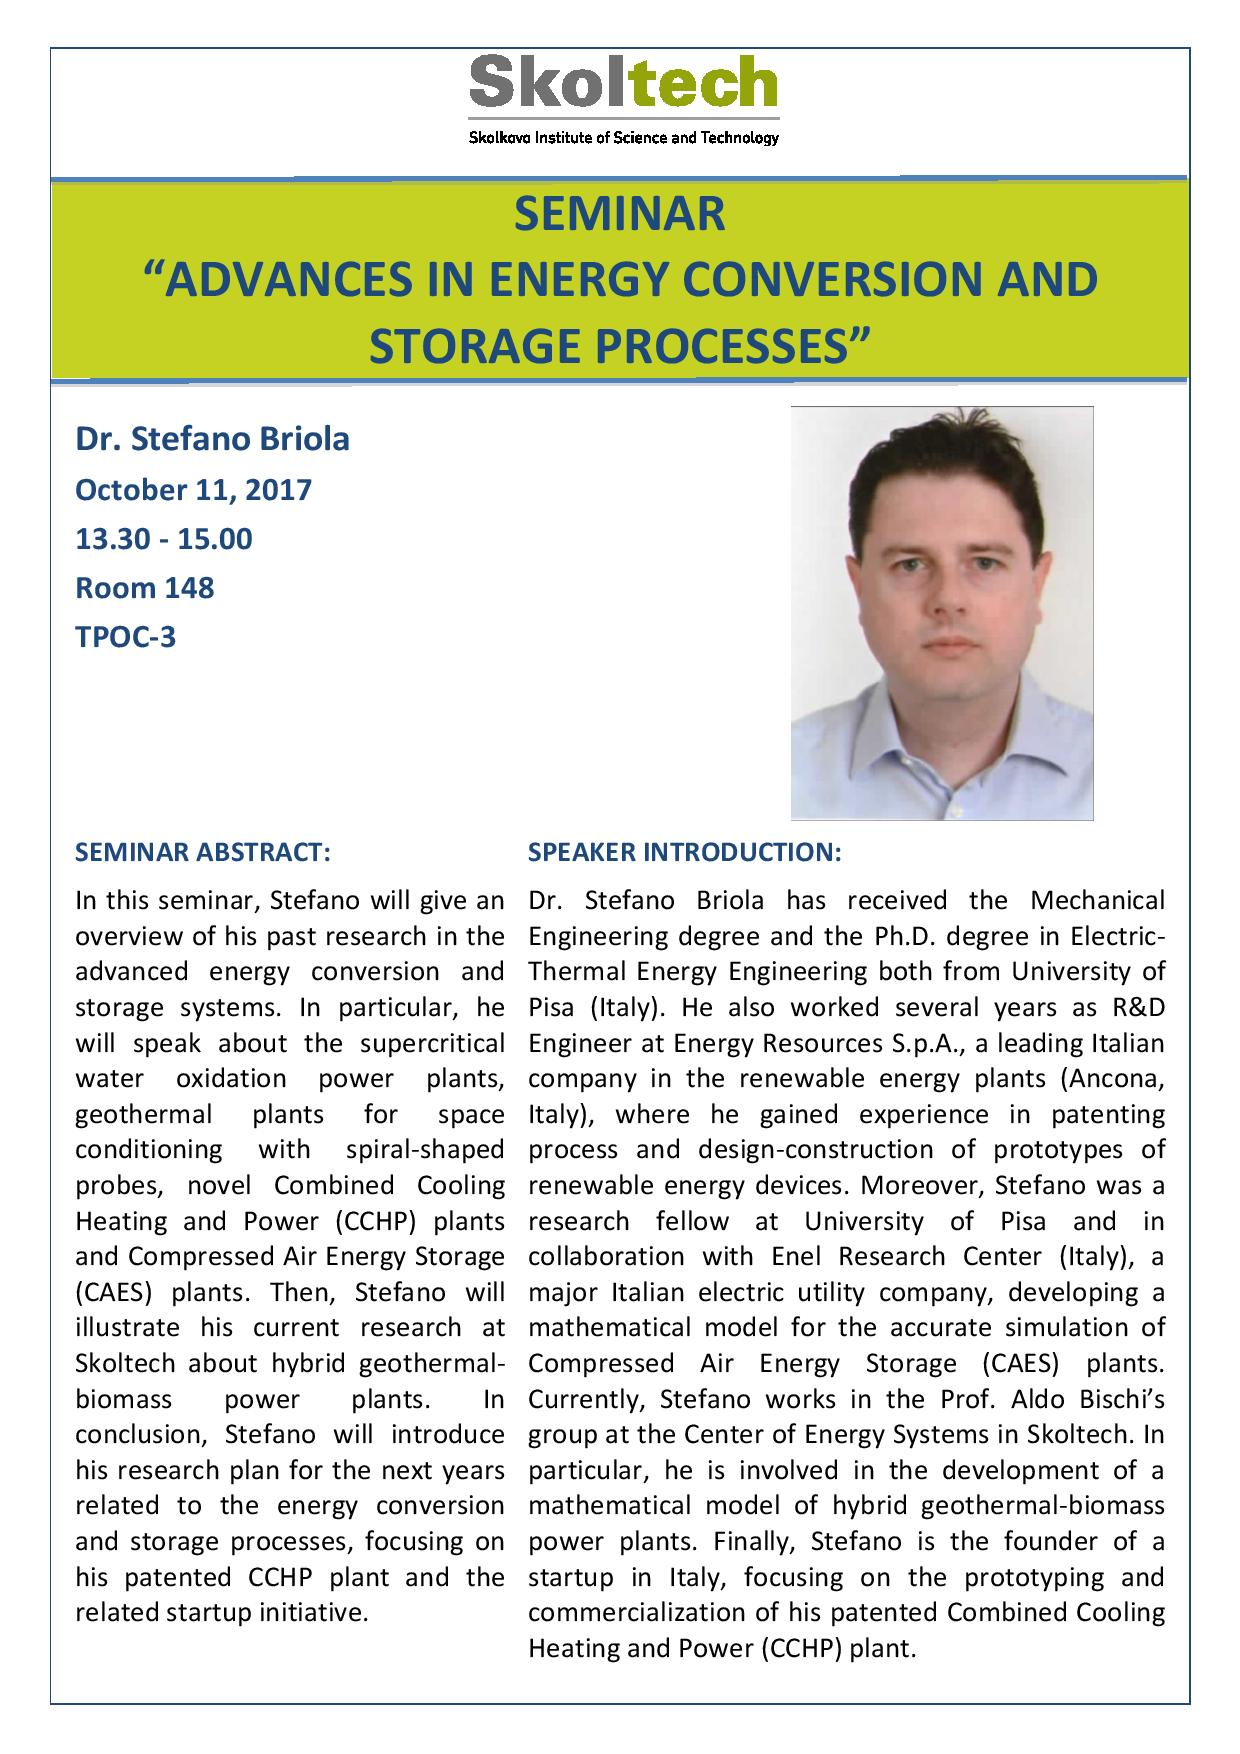 dr-stefano-briola-october-11-seminar-announcement-ib-page-001